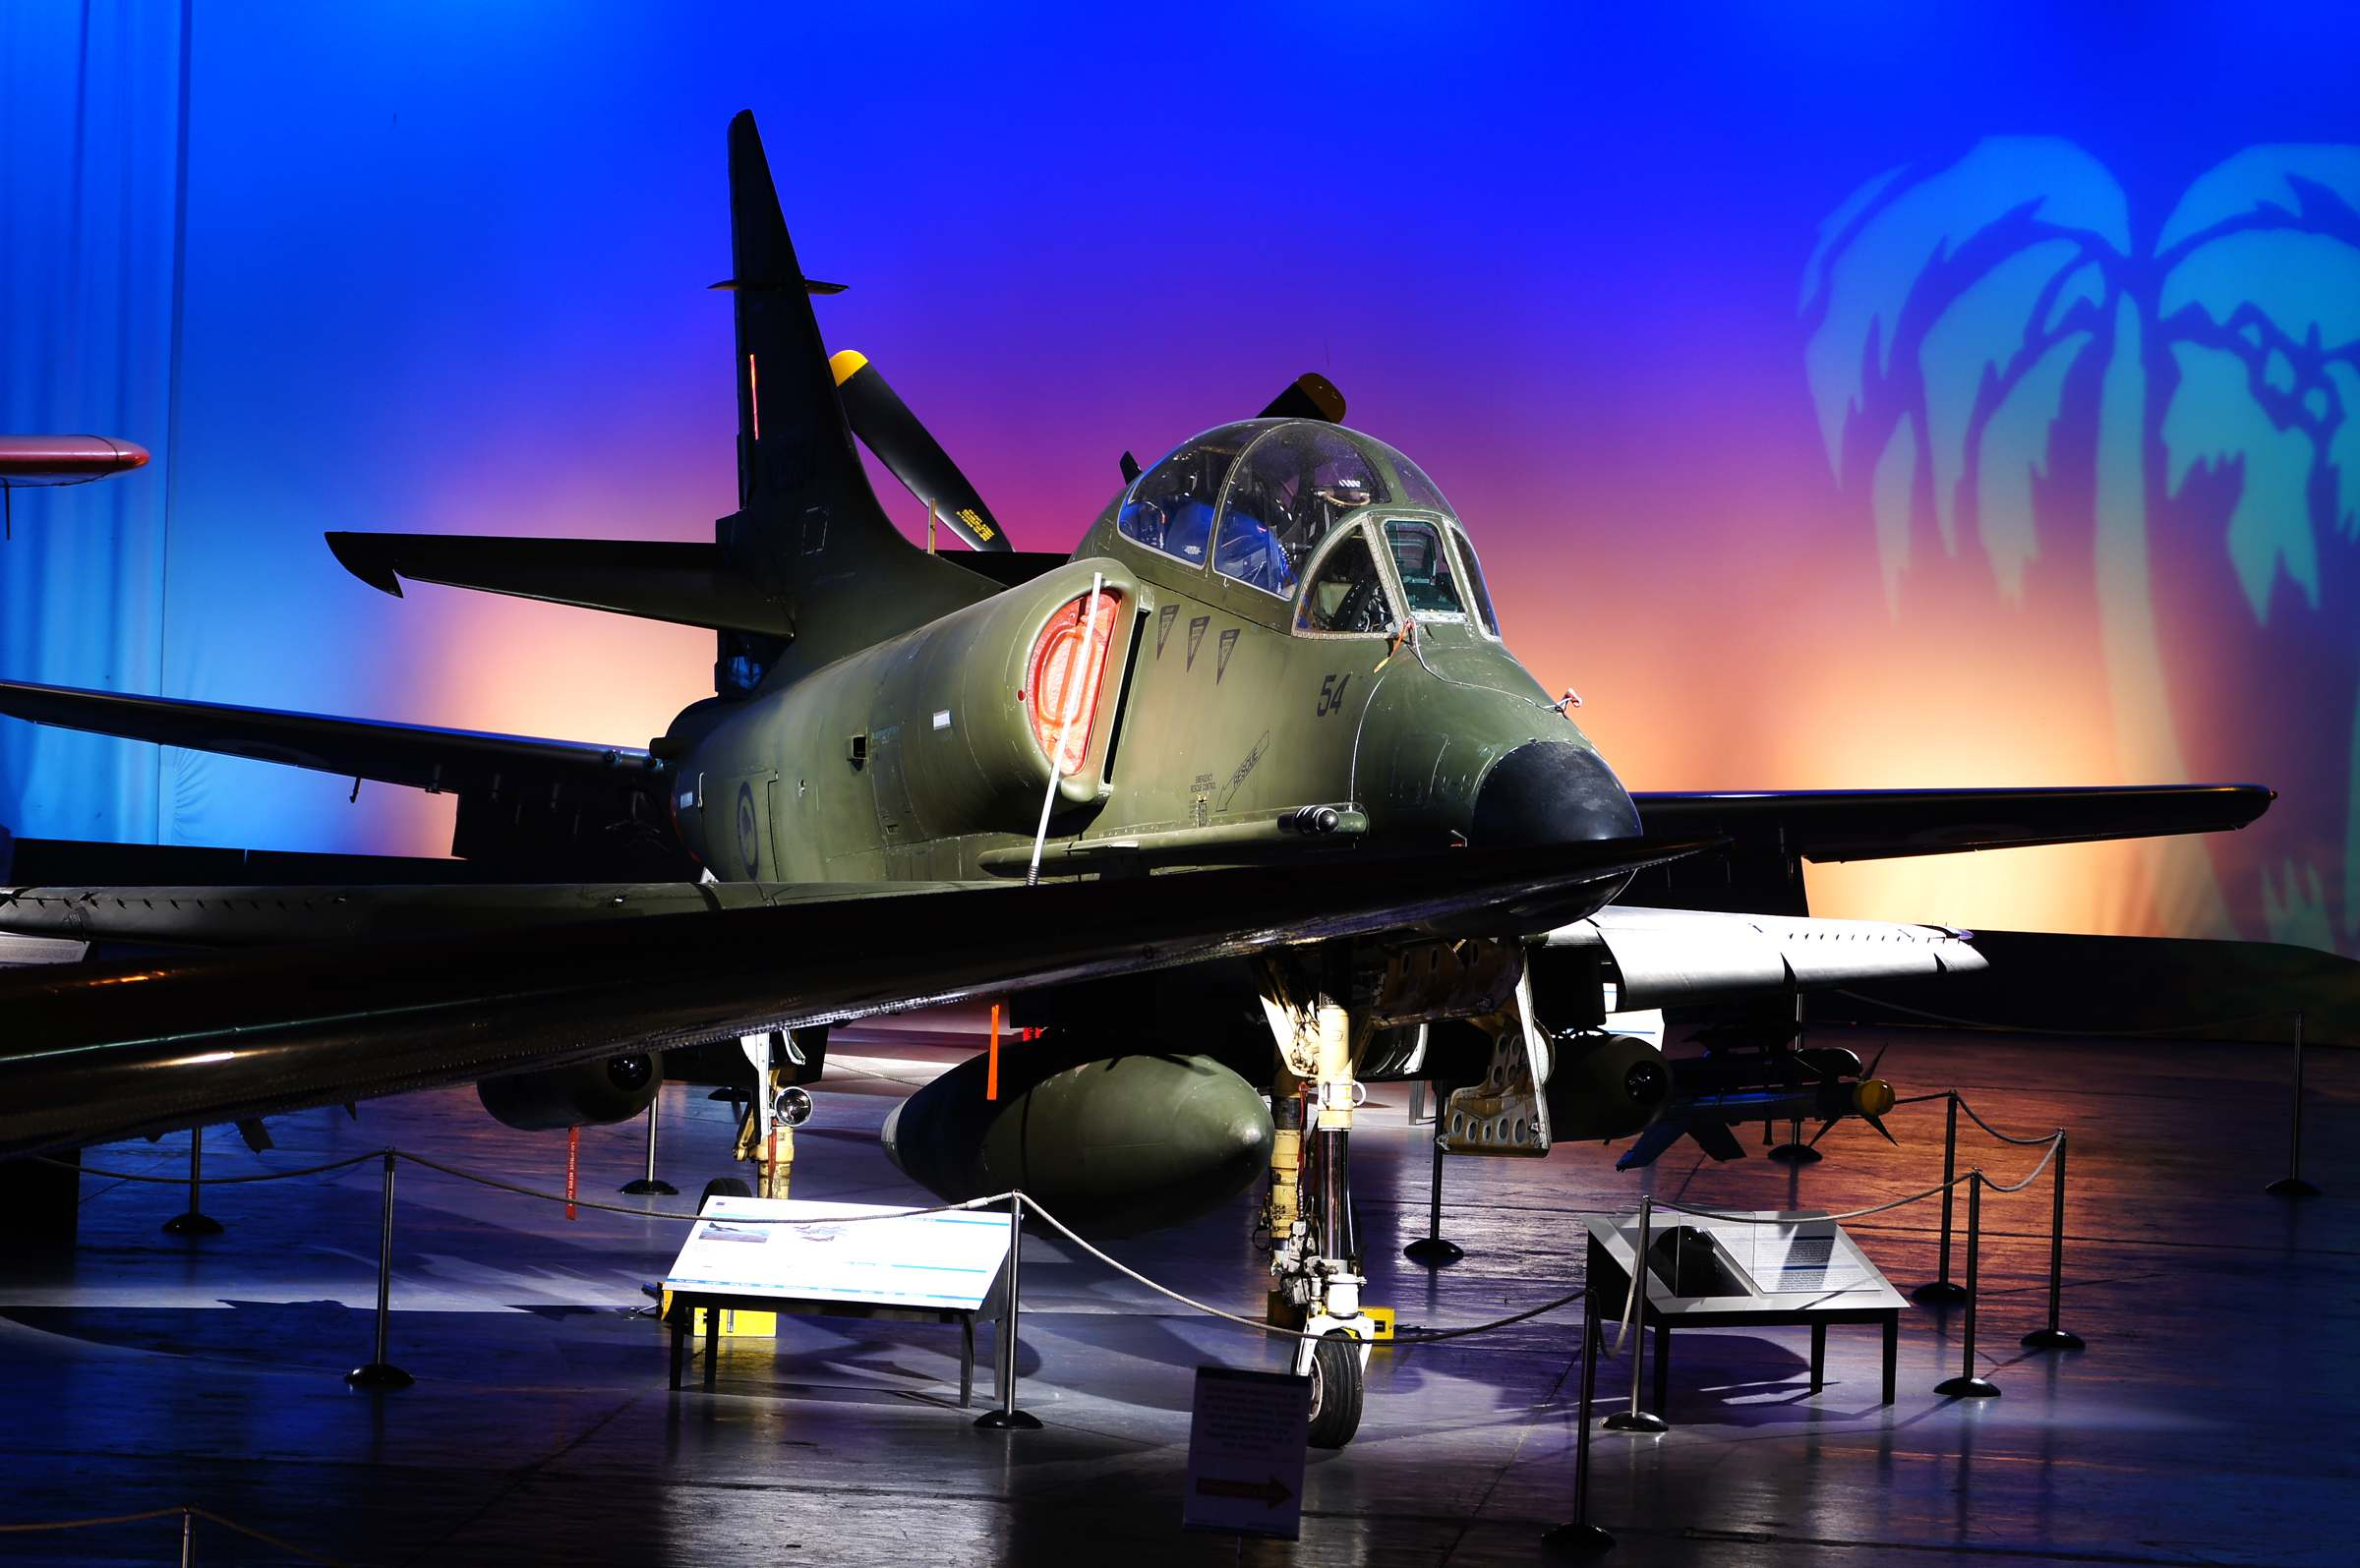 air force nz5 Air Force Museum of New Zealand   Must See Attraction